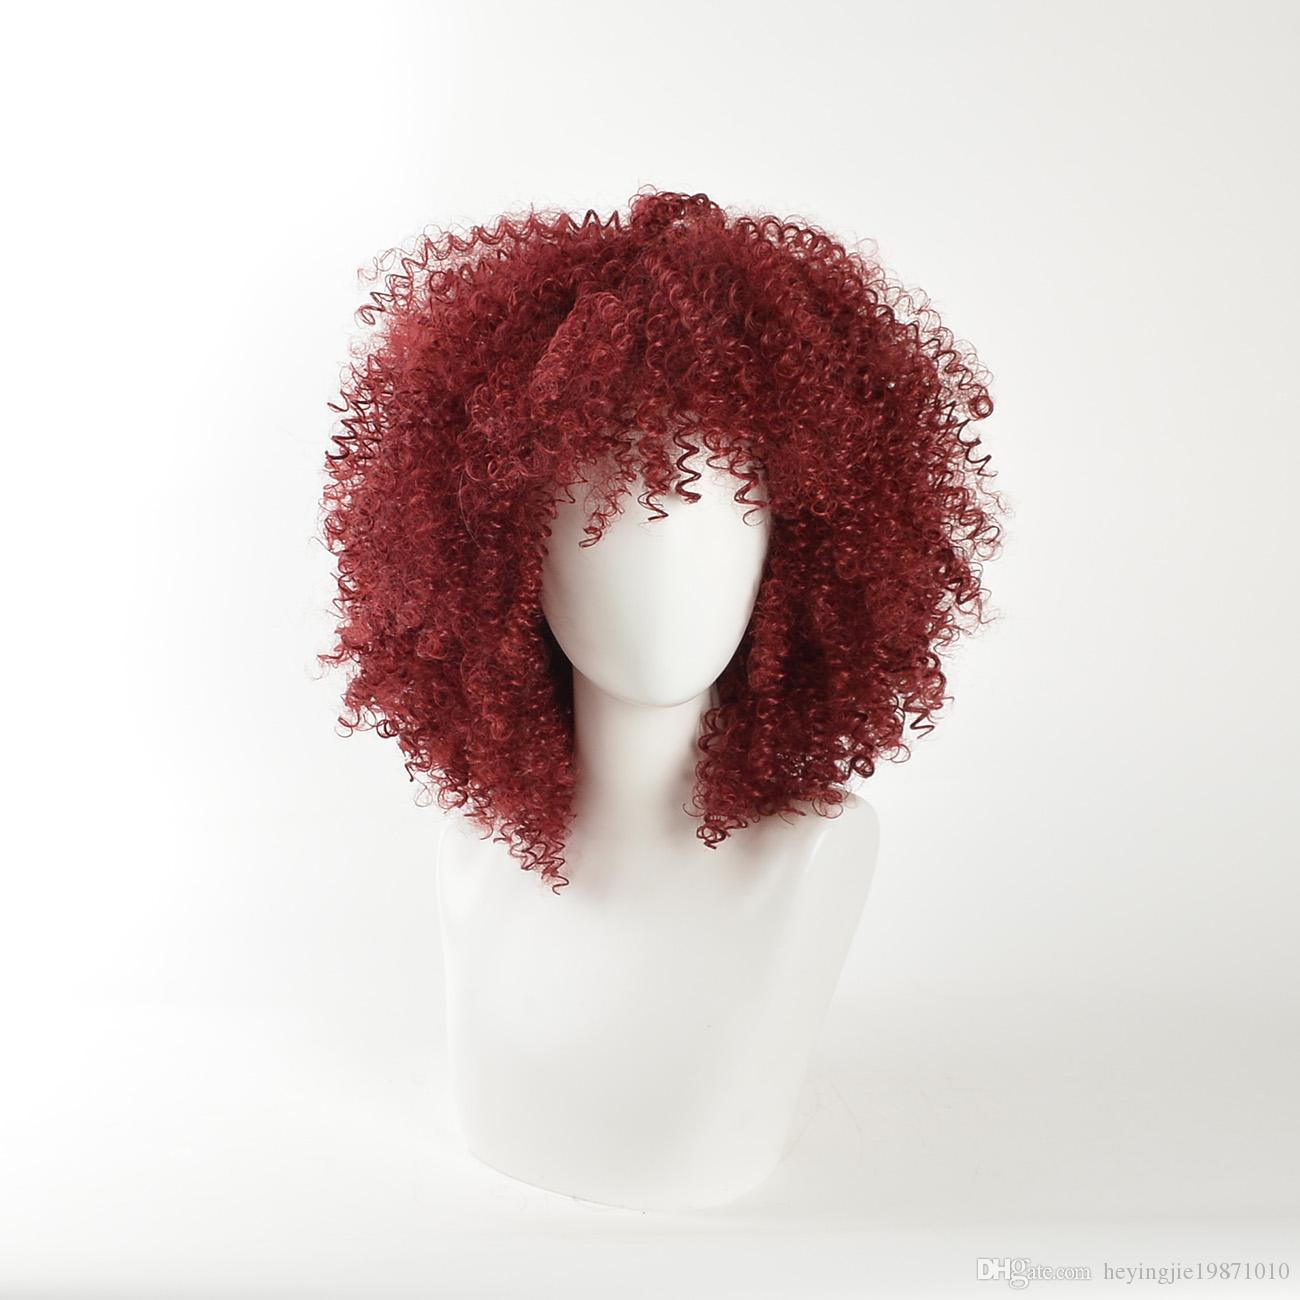 Xiu Zhi Mei Red Curly Synthetic Wigs for Black Women Natural Full American African Medium Afro Wig Cosplay Heat Resistant